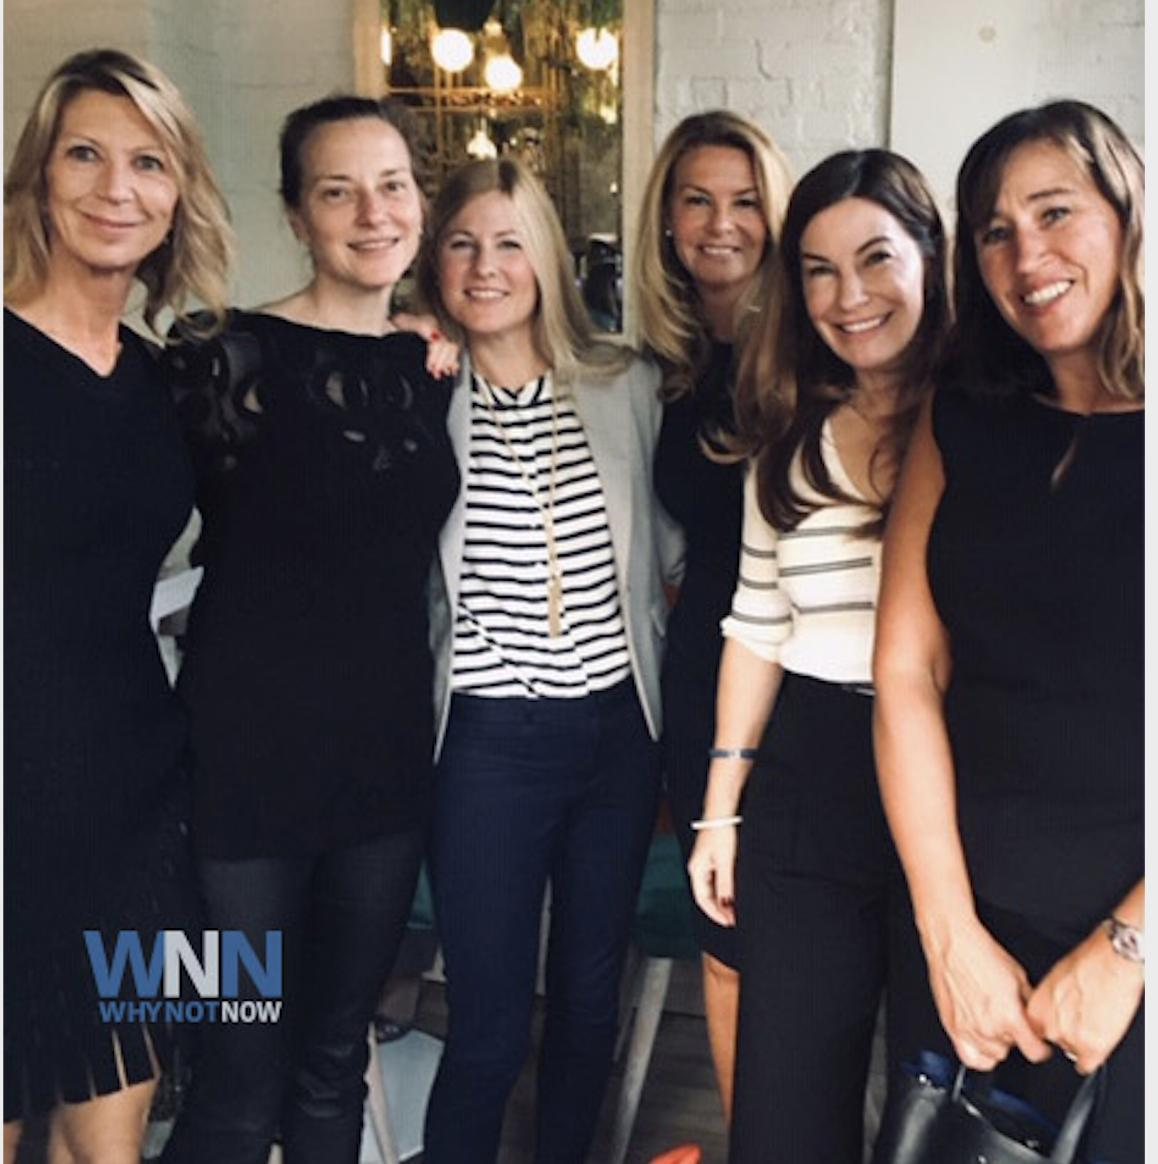 A great evening with @scotiabank Digital Factory's @WomenOfInflnce hosted by @EchelonWealth including trailblazer Elaine Kunda on Disruptive Ventures. http://ow.ly/aLfU50wgFRt  #whynotnow #fintech #WOIEvening #womenofinfluence